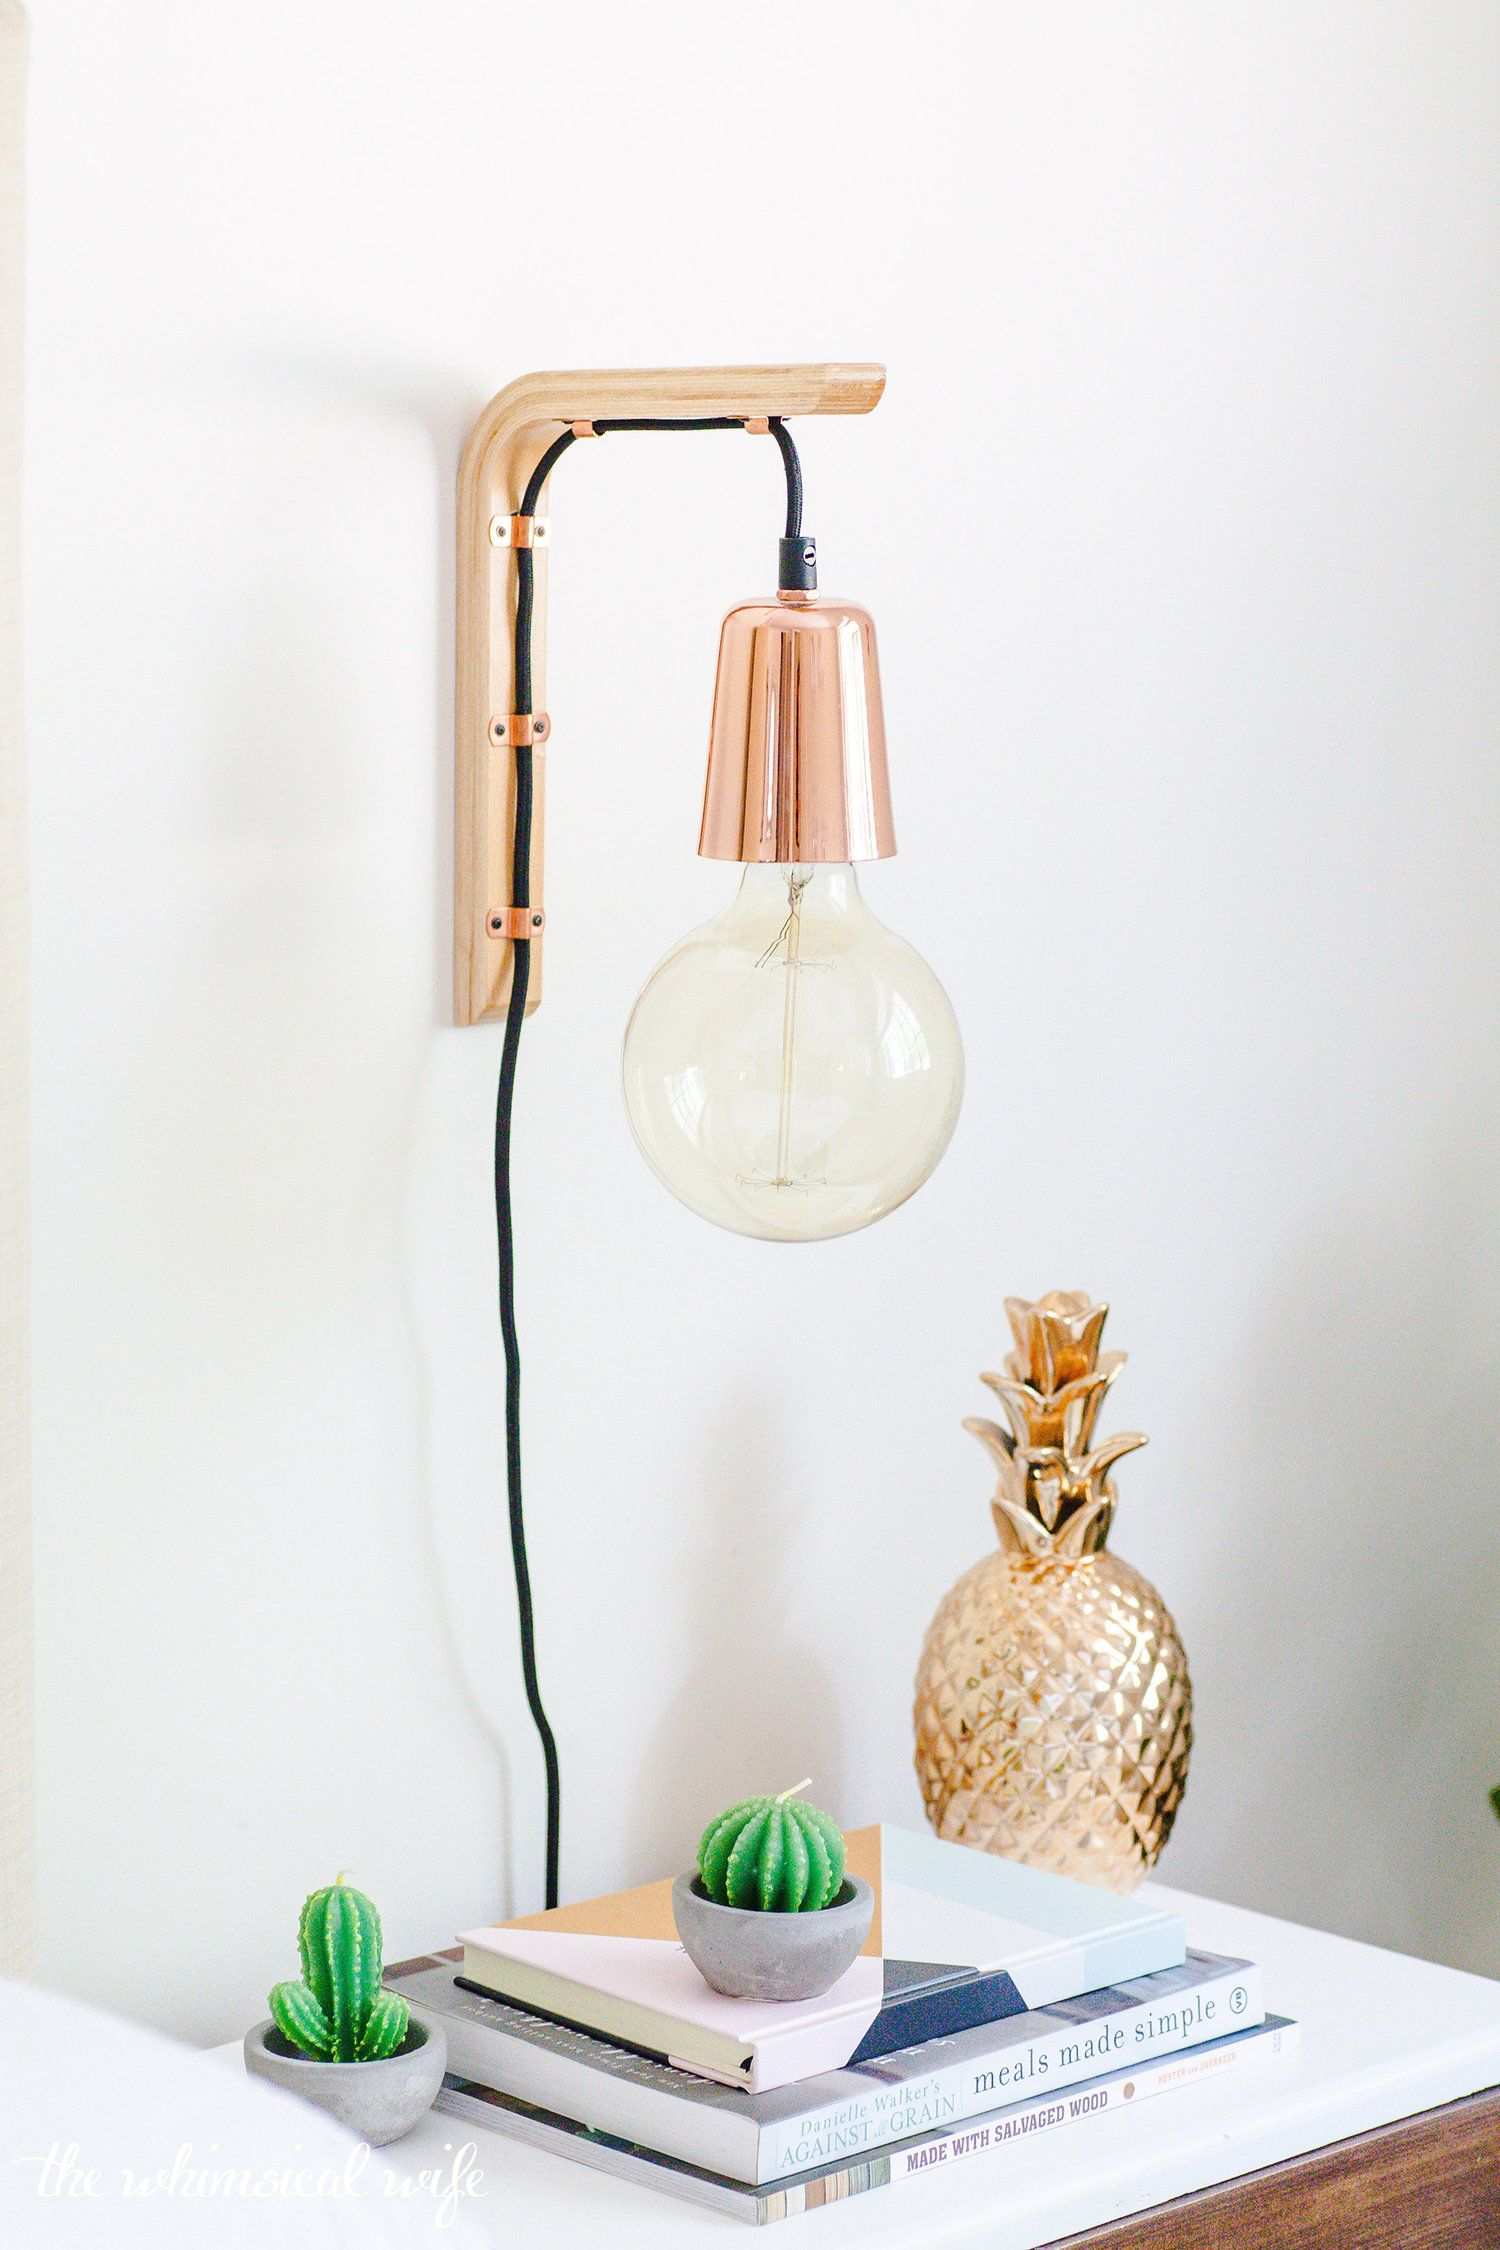 Hanging Wooden Wall Bracket Light